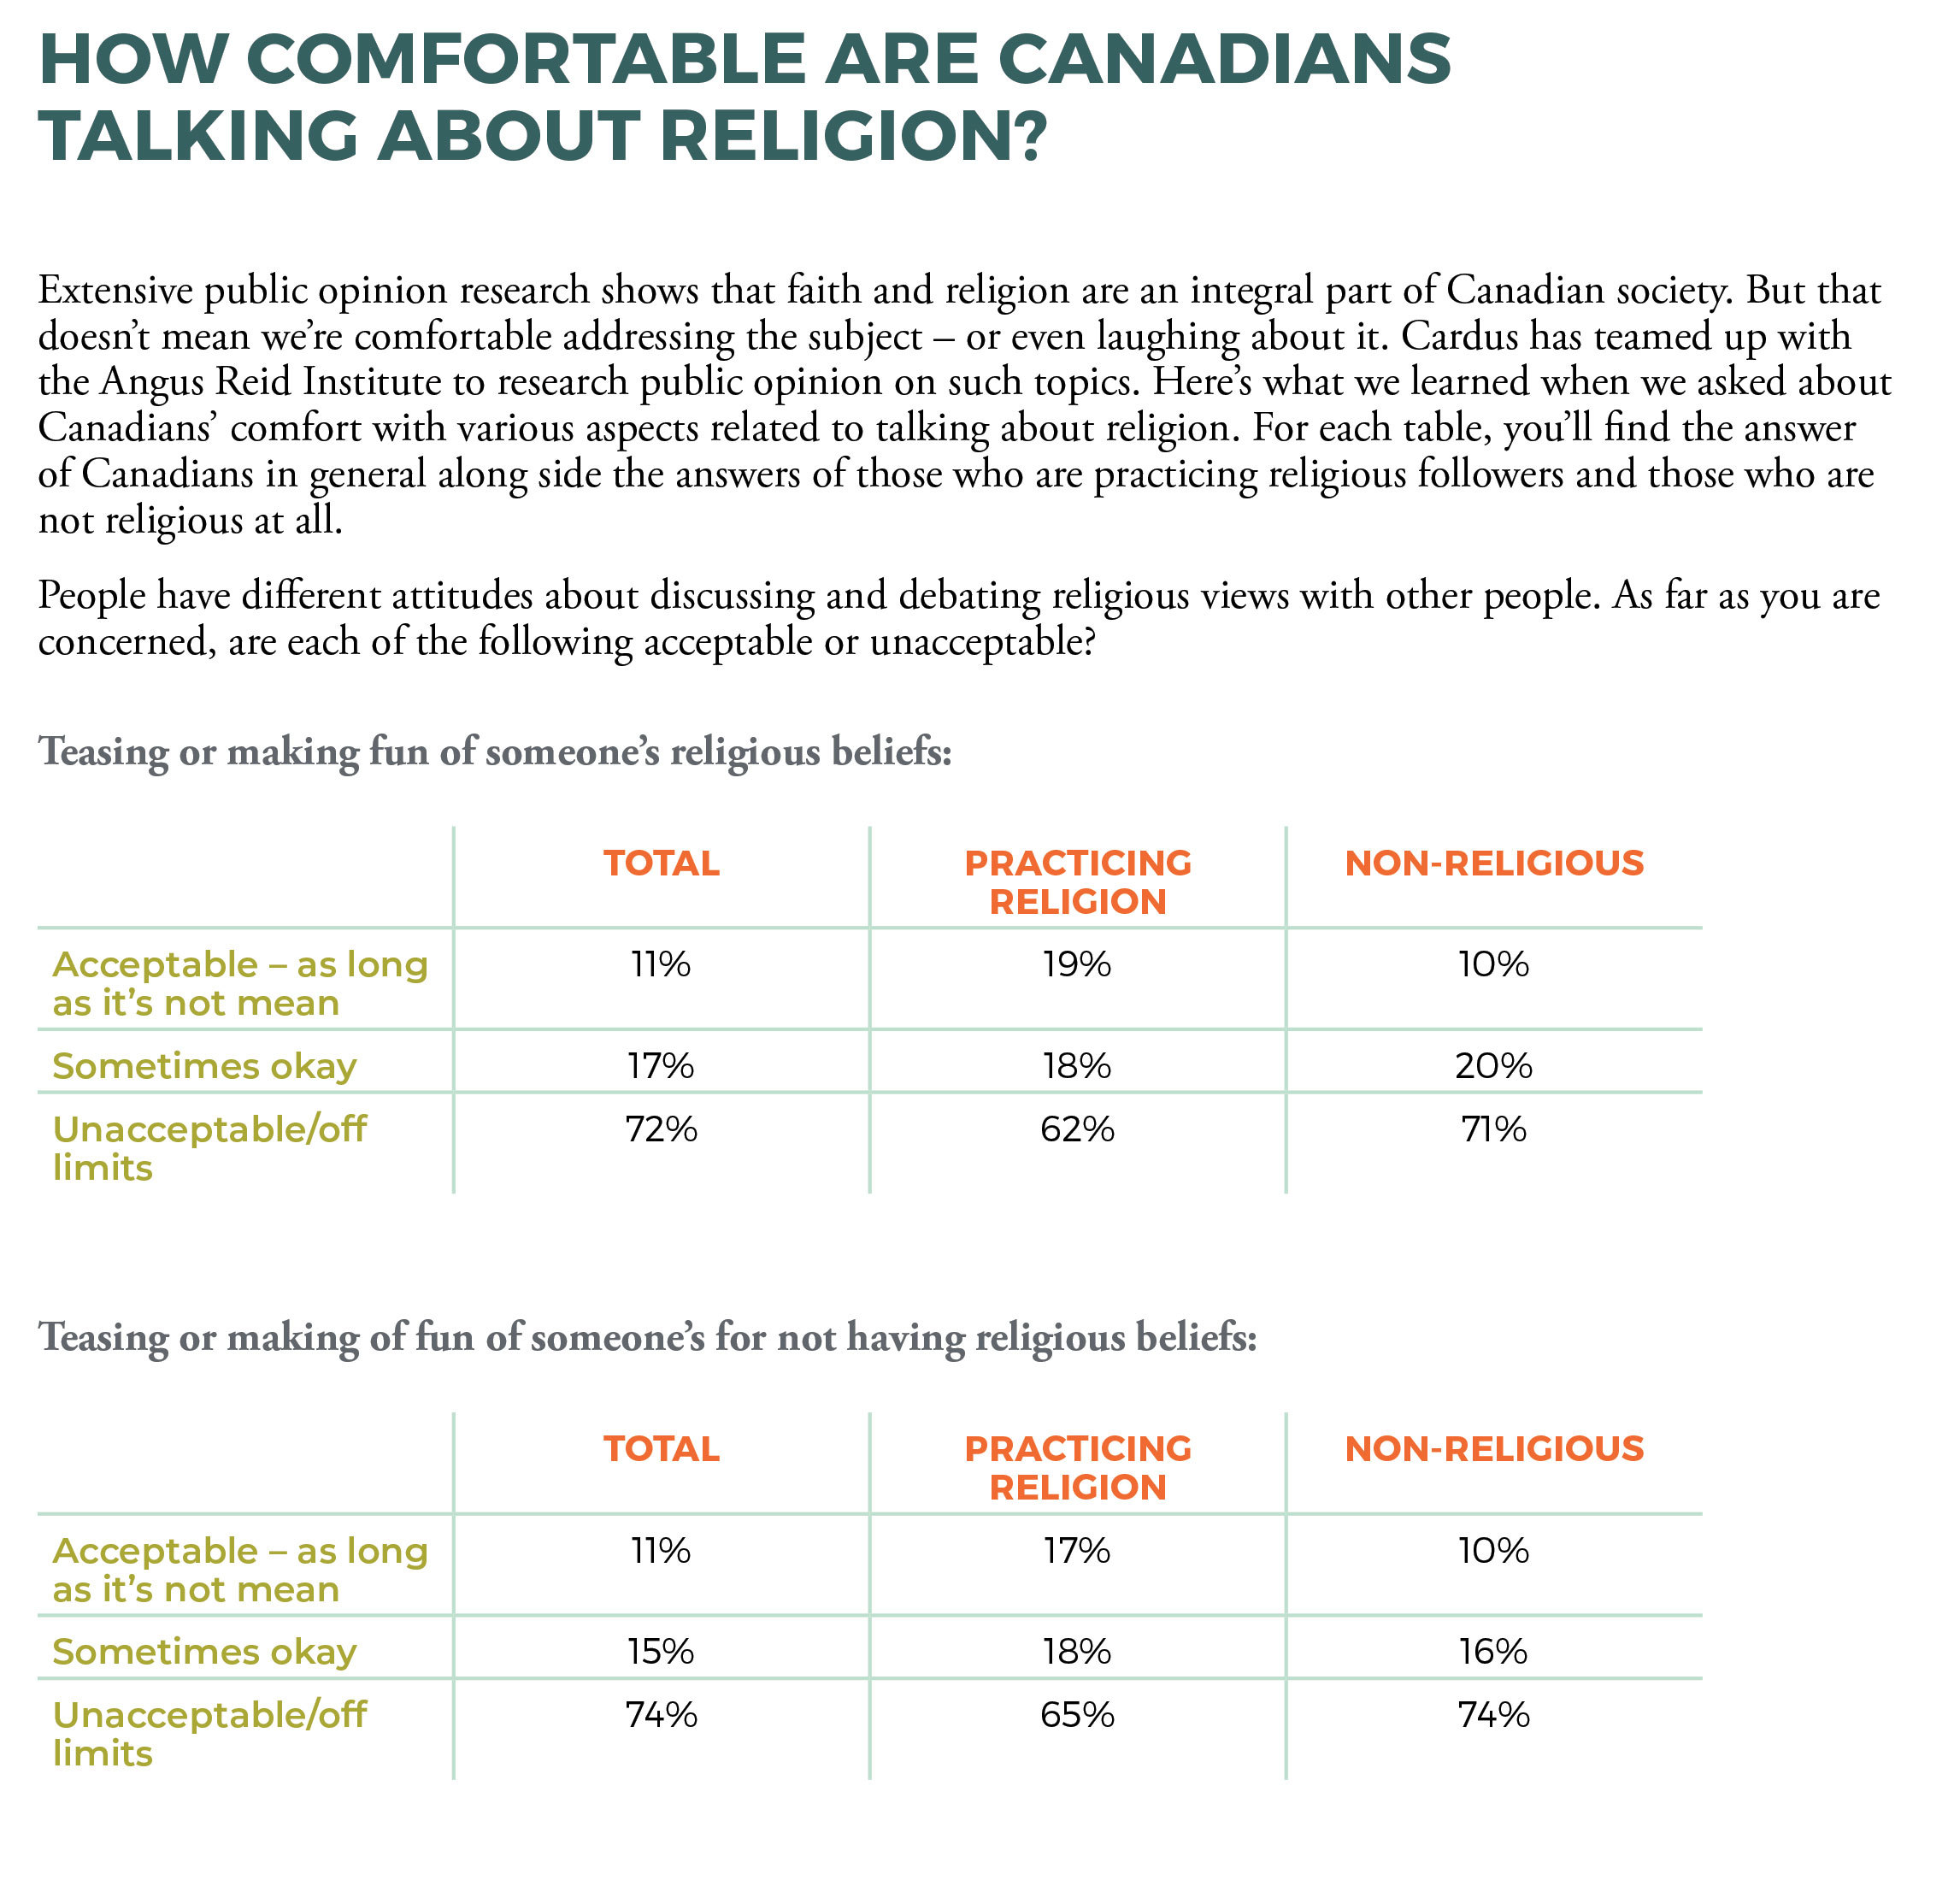 How Comfortable Are Canadians Talking About Religion?